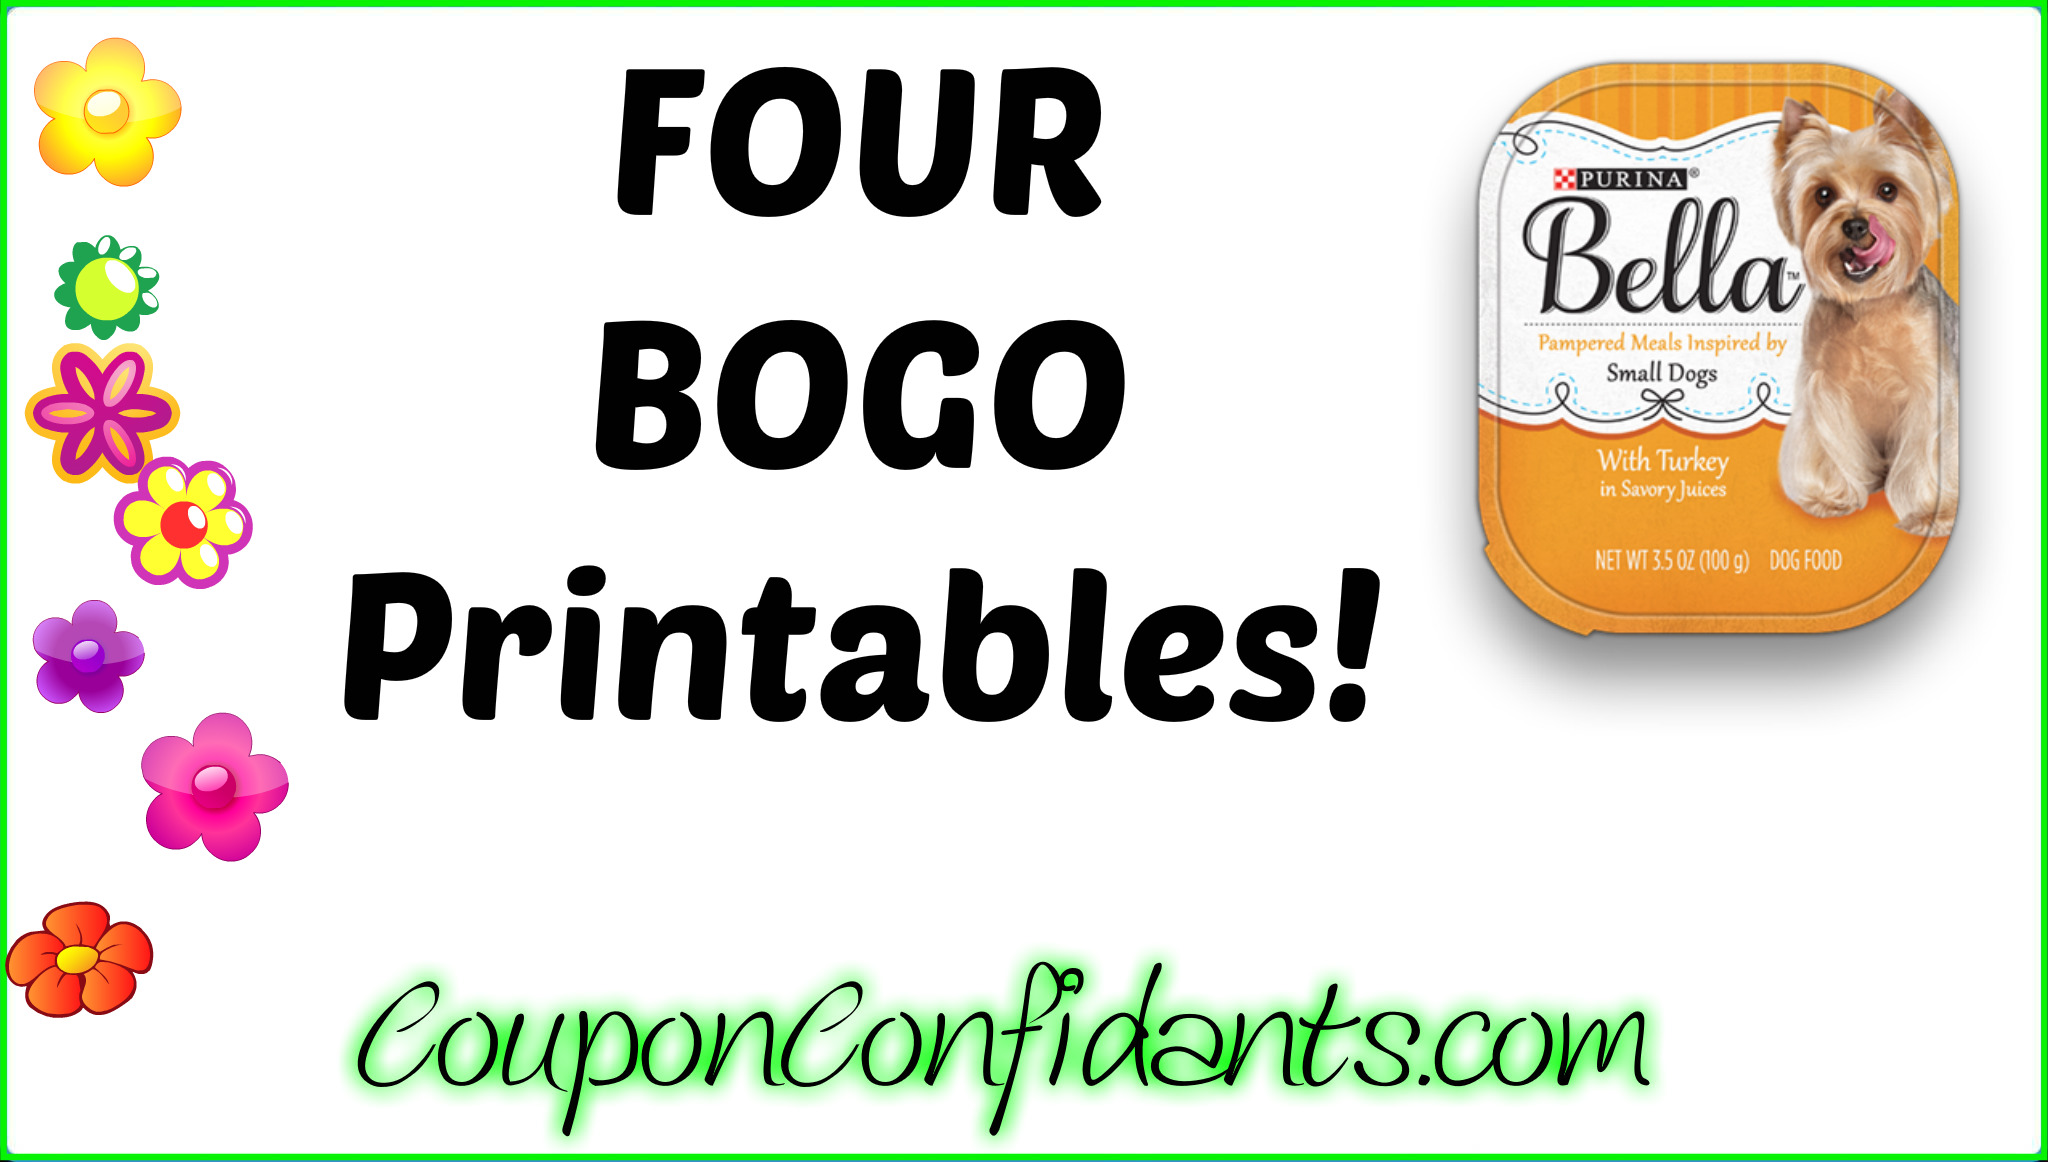 graphic about Printable Pet Coupons named WOW!!!! 4 BOGO Printable Coupon codes for Bella Pet Meals